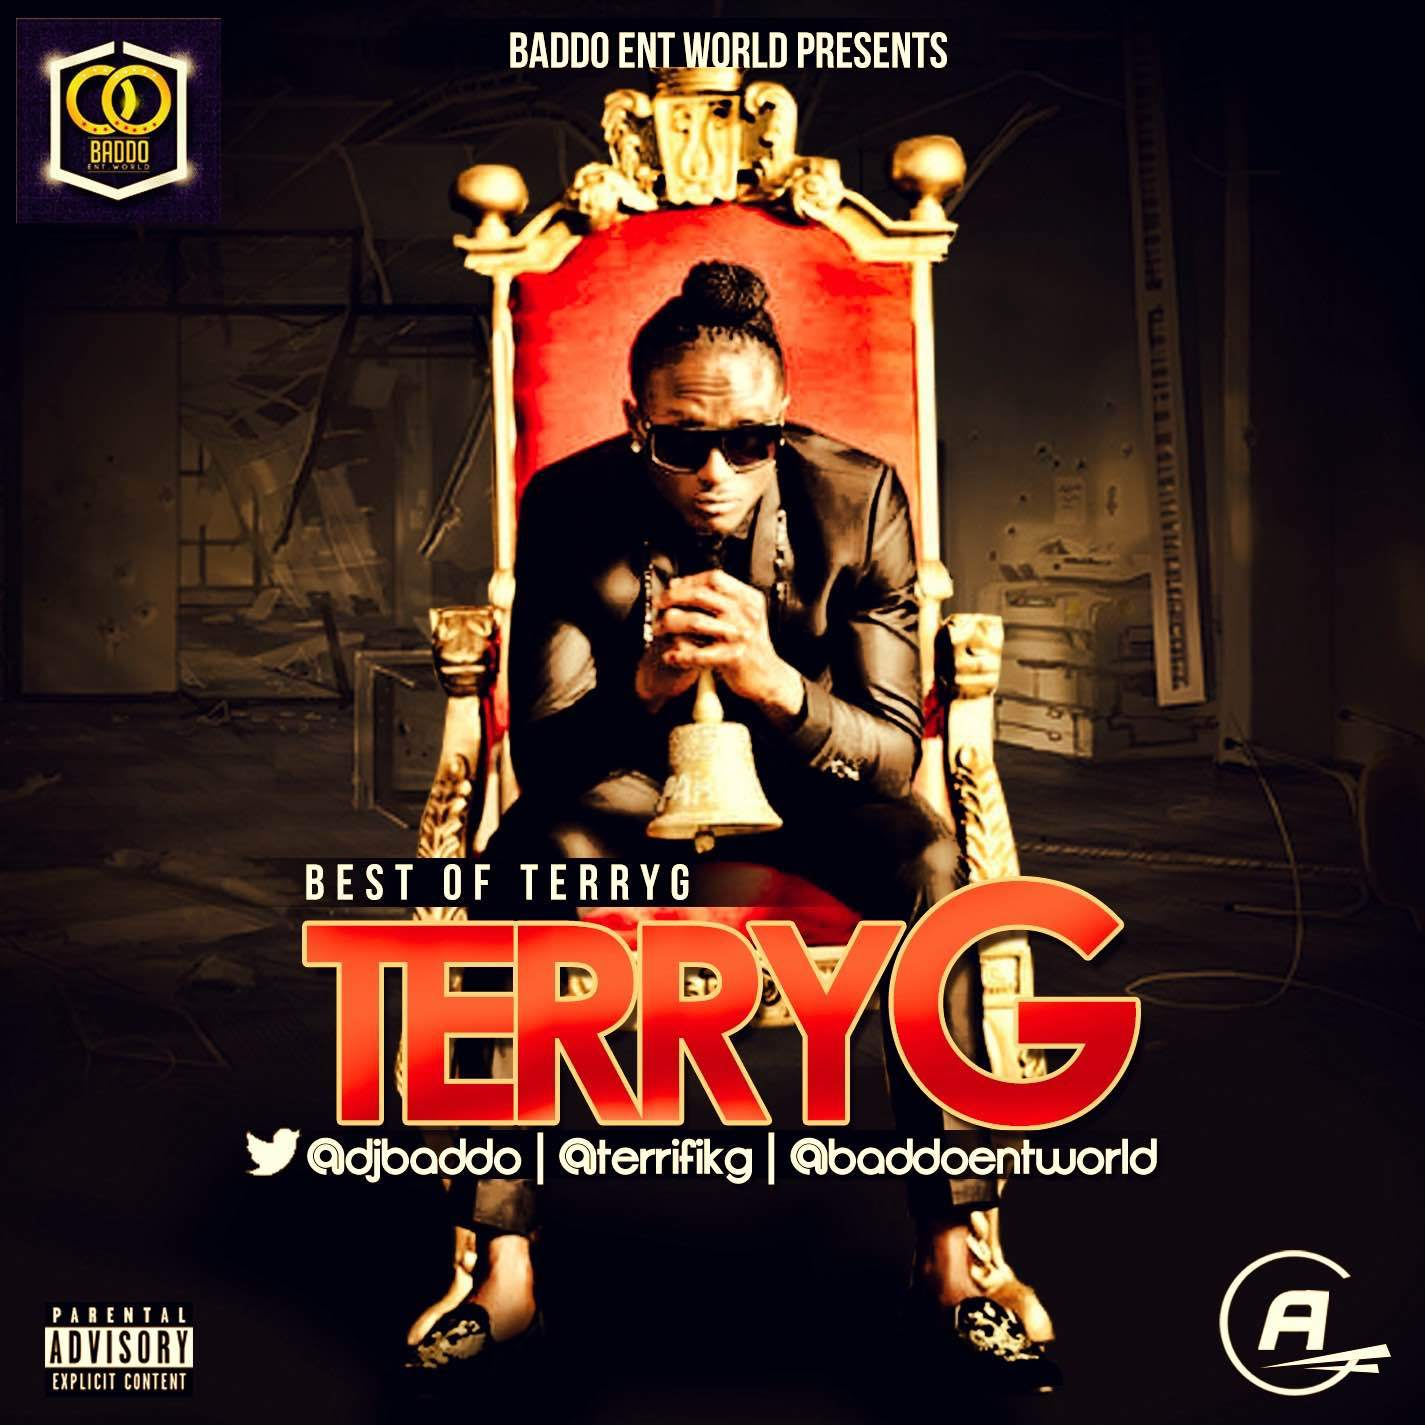 Dj Baddo - Best Of Terry G [MixTape]